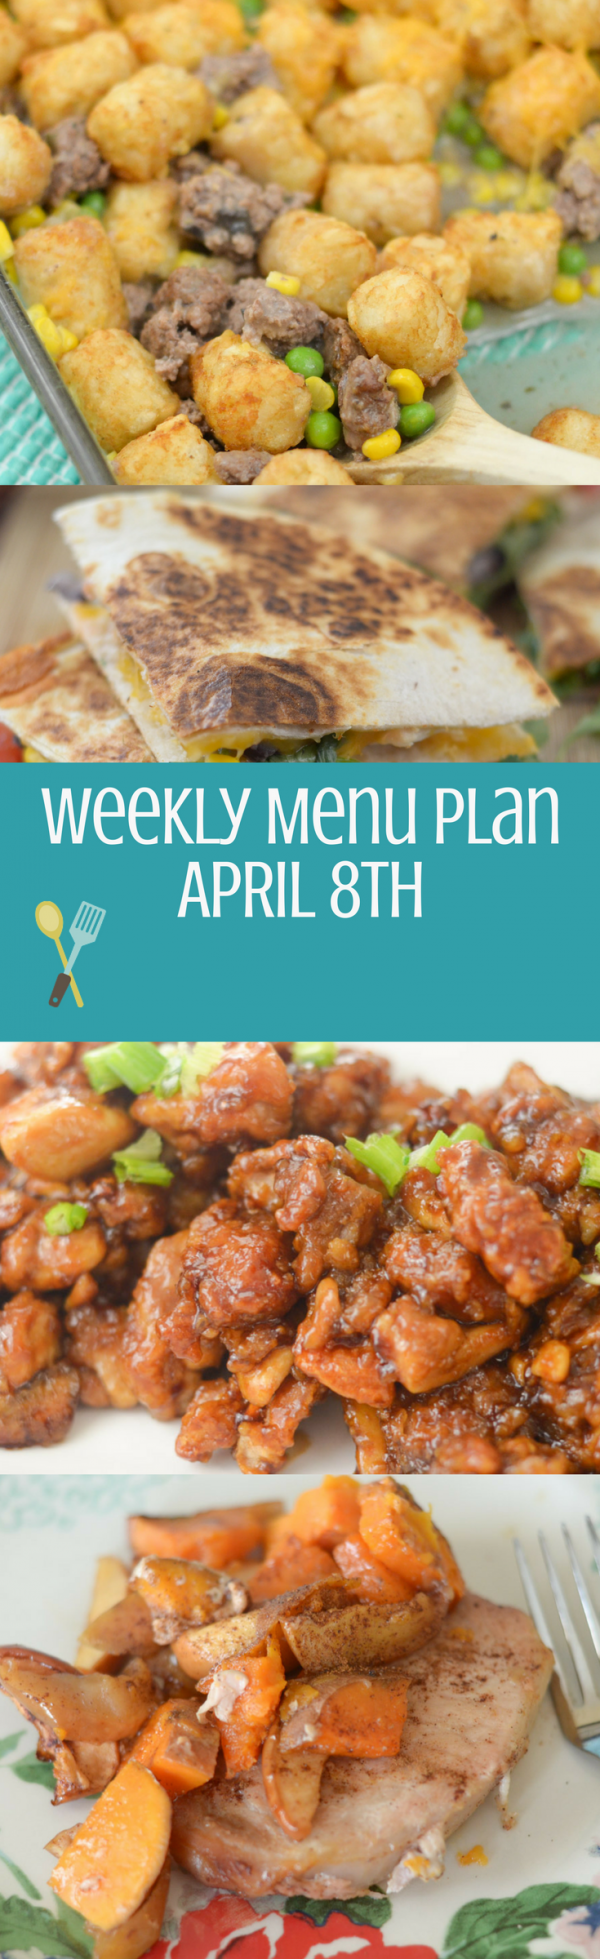 Weekly Menu Plan - Week of April 8th